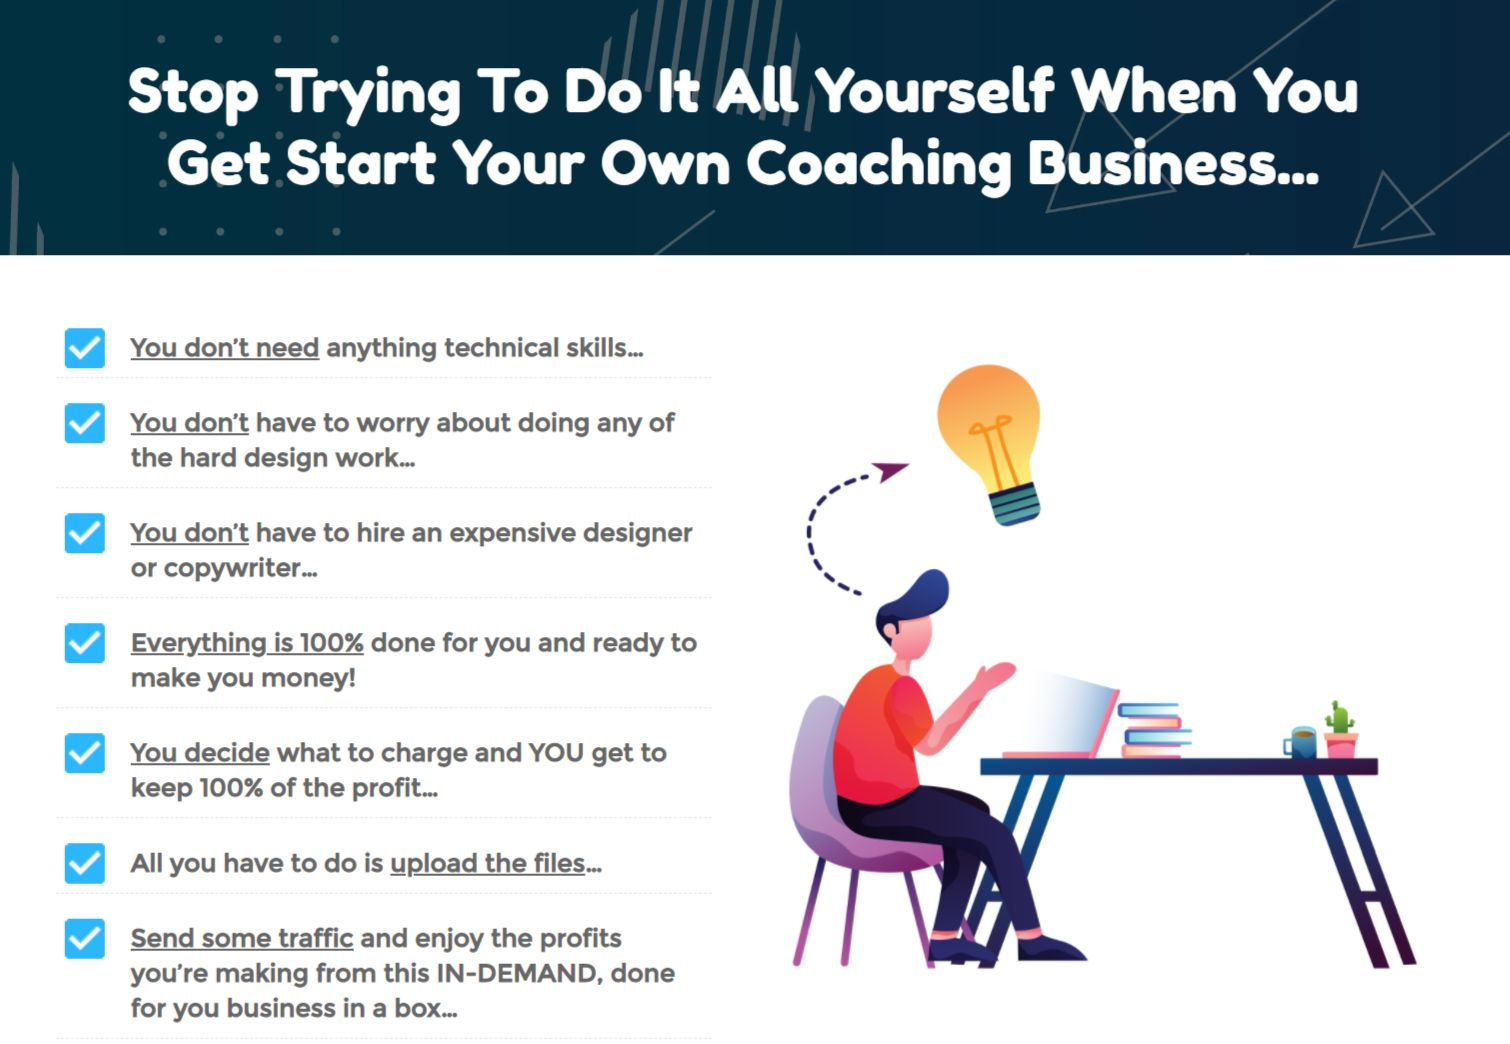 Start-Your-Own-Coaching-Business-PLR-benefits